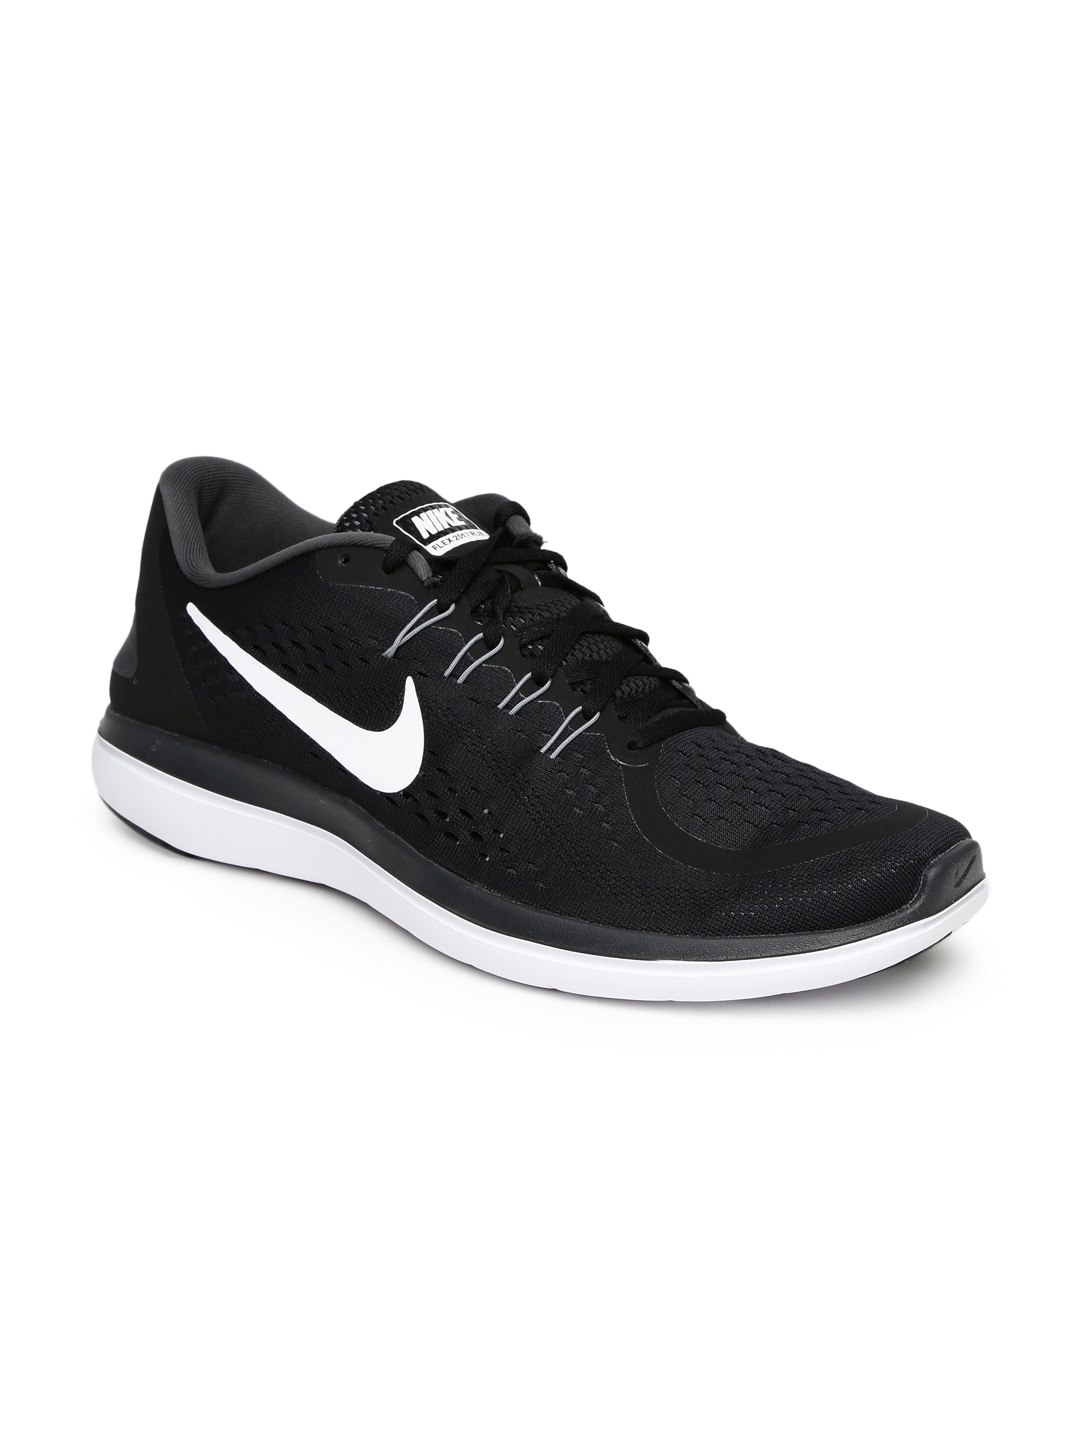 Nike Men Black Flex 2017 Running Shoes price in India